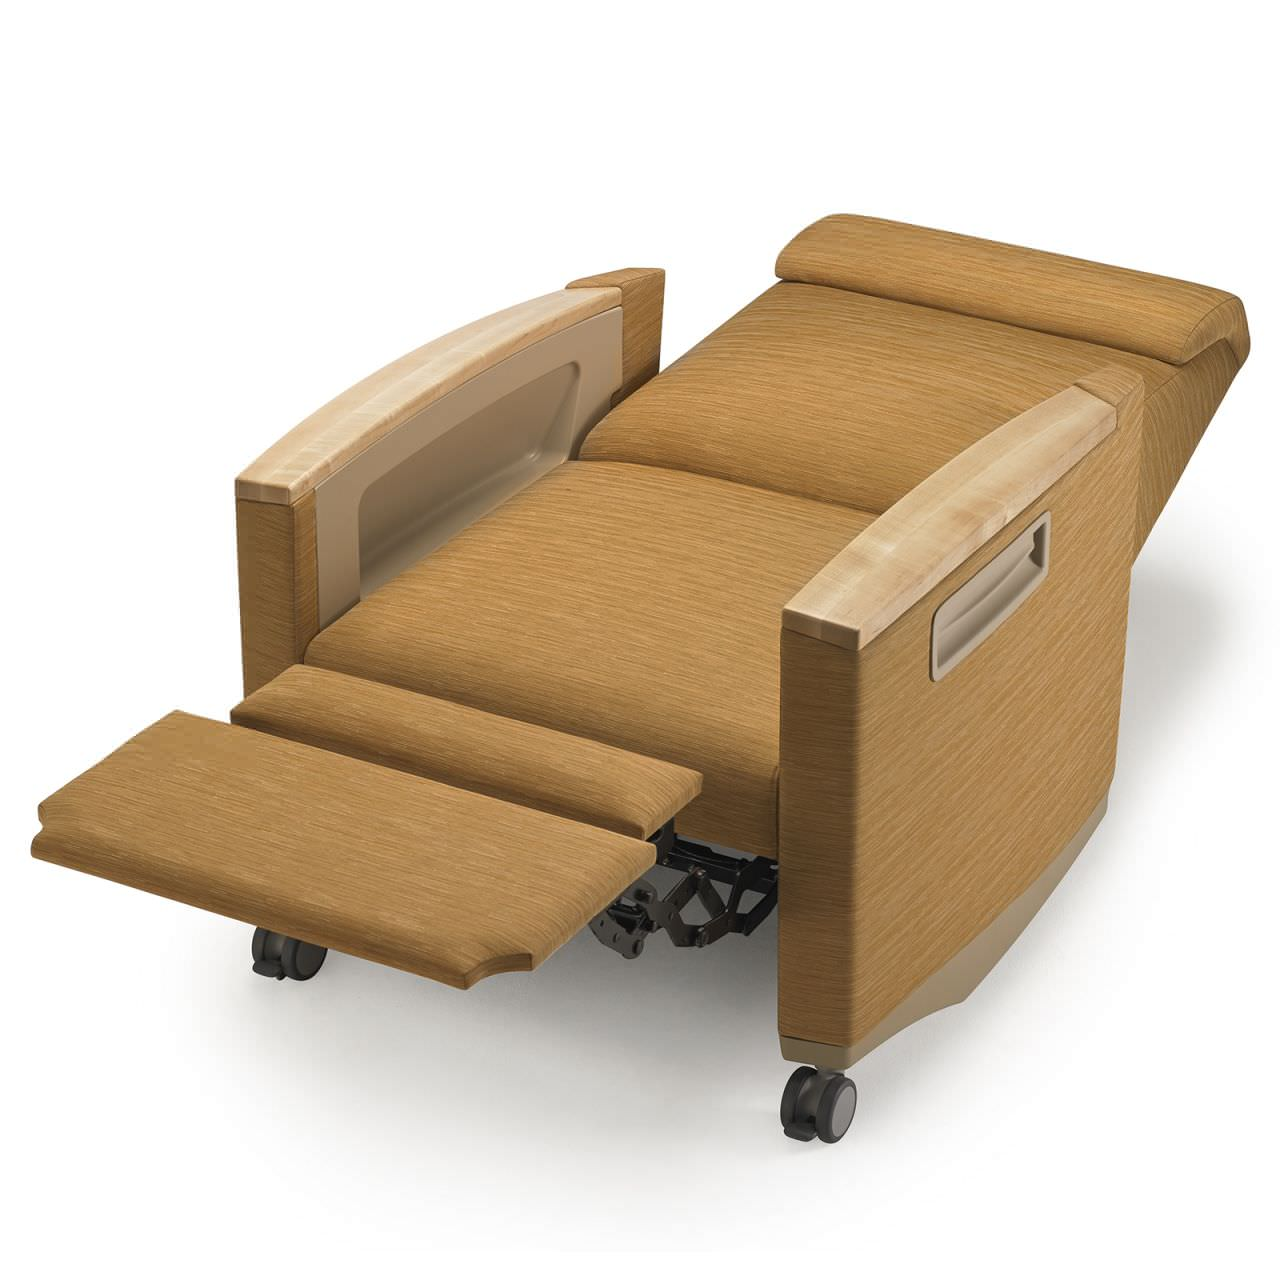 ... Synthetic leather medical chair / reclining / with legrest CONSOUL Nemschoff  sc 1 st  ArchiExpo & Synthetic leather medical chair / reclining / with legrest ... islam-shia.org